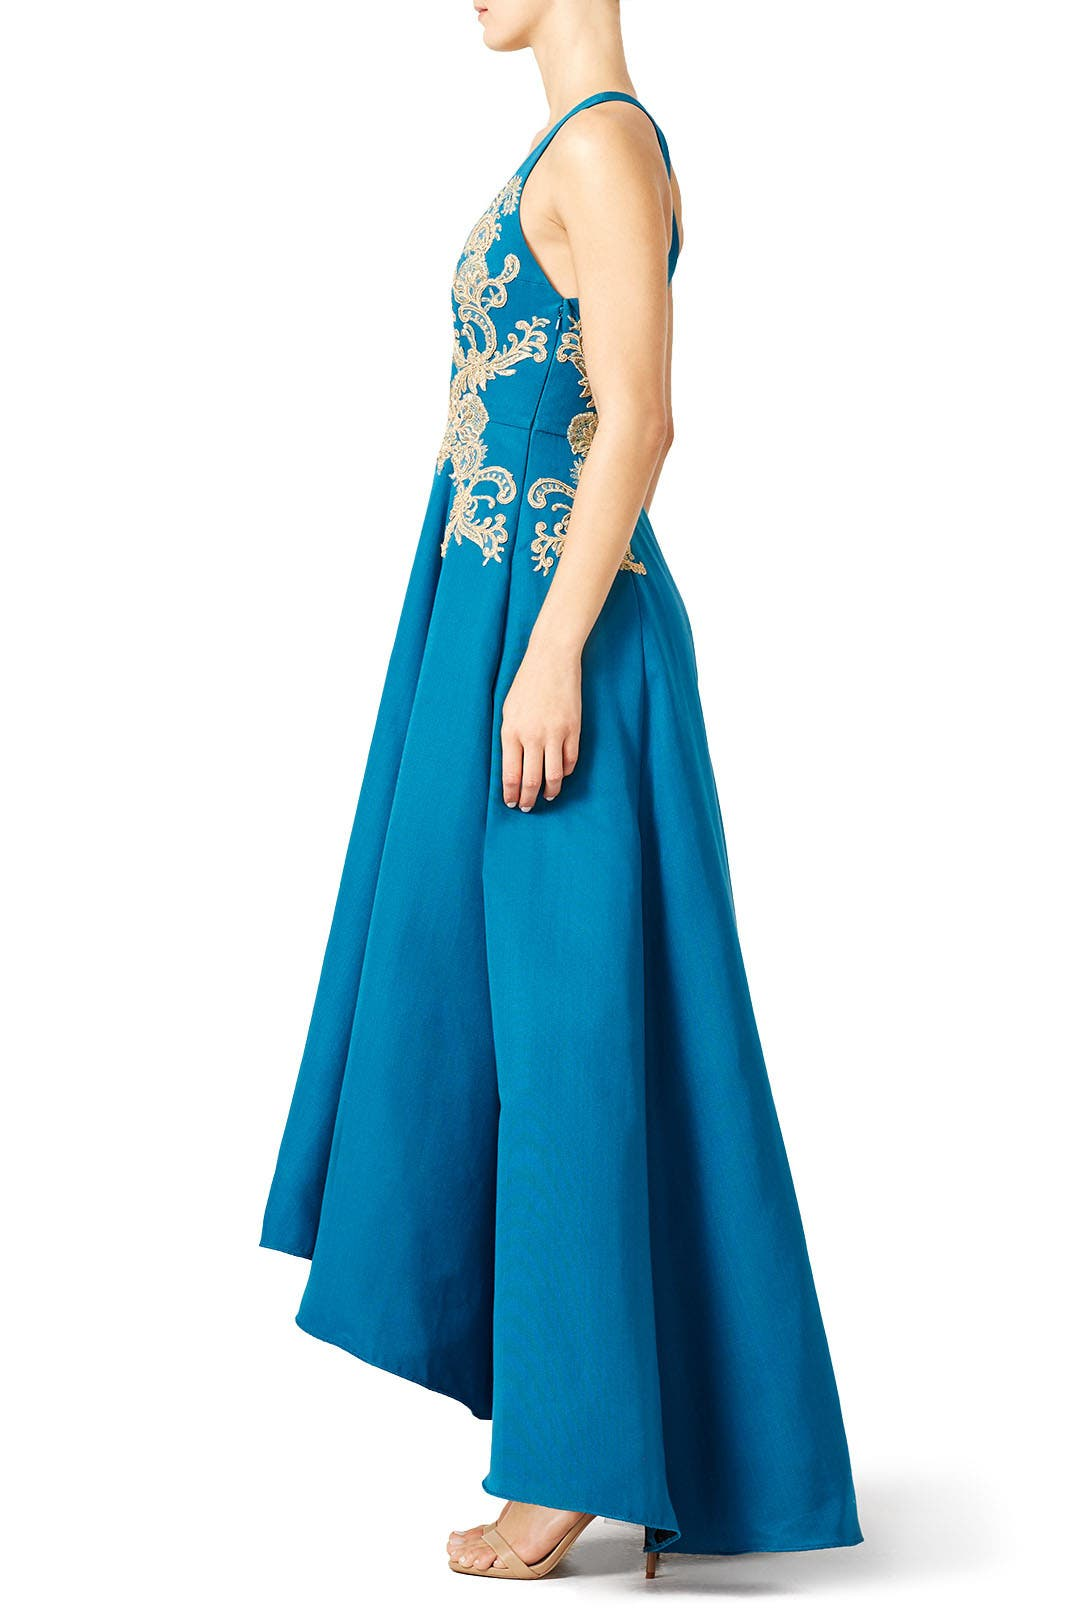 f16ce489 Gilded Royal Teal Gown by Marchesa Notte for $97 | Rent the Runway